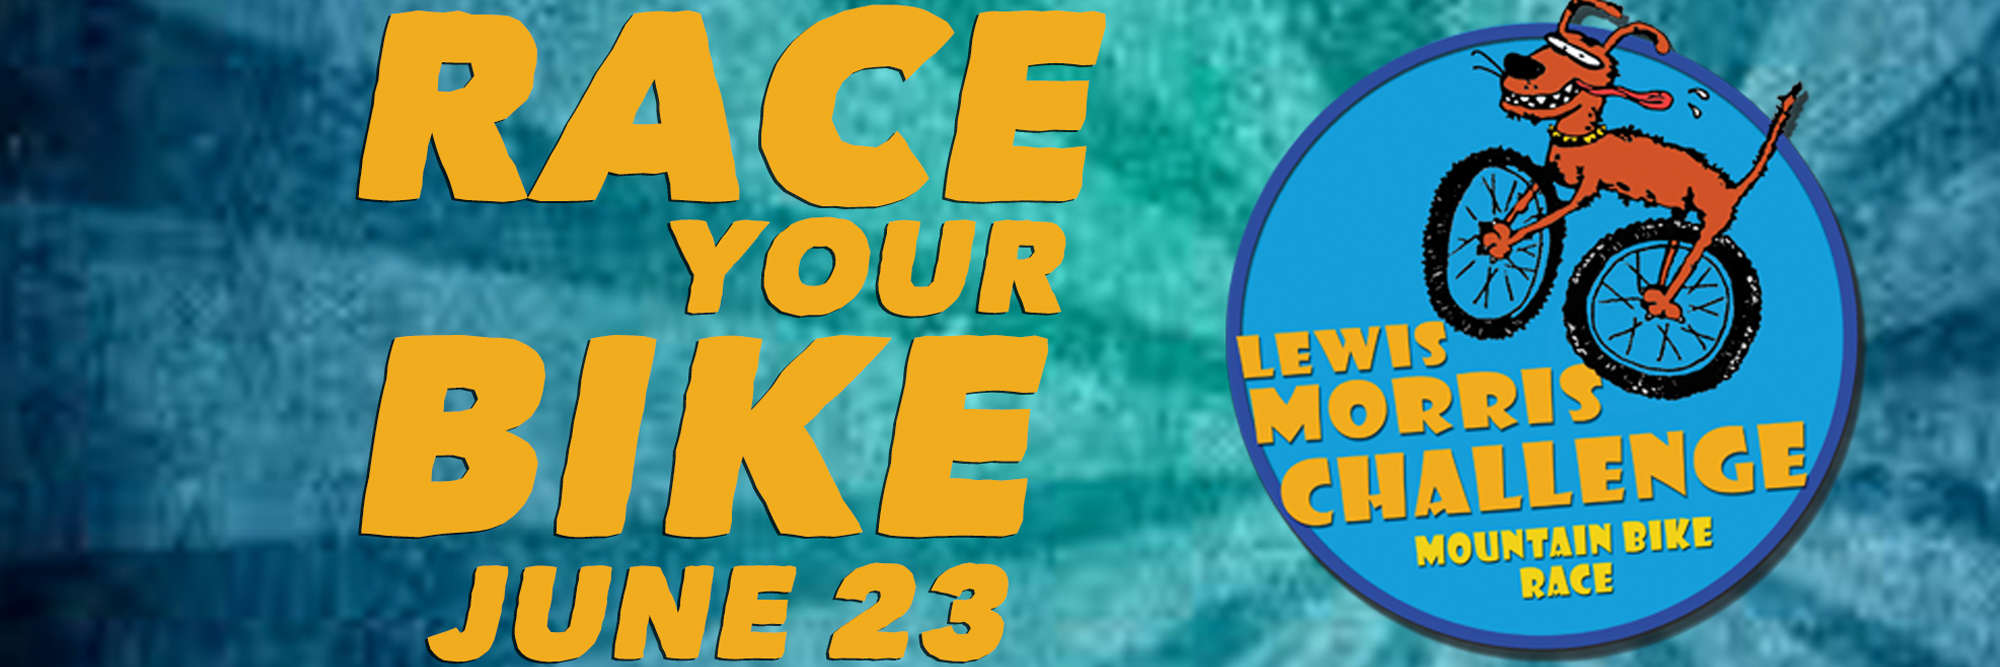 Register For The Lewis Morris Challenge Mountain Bike Race